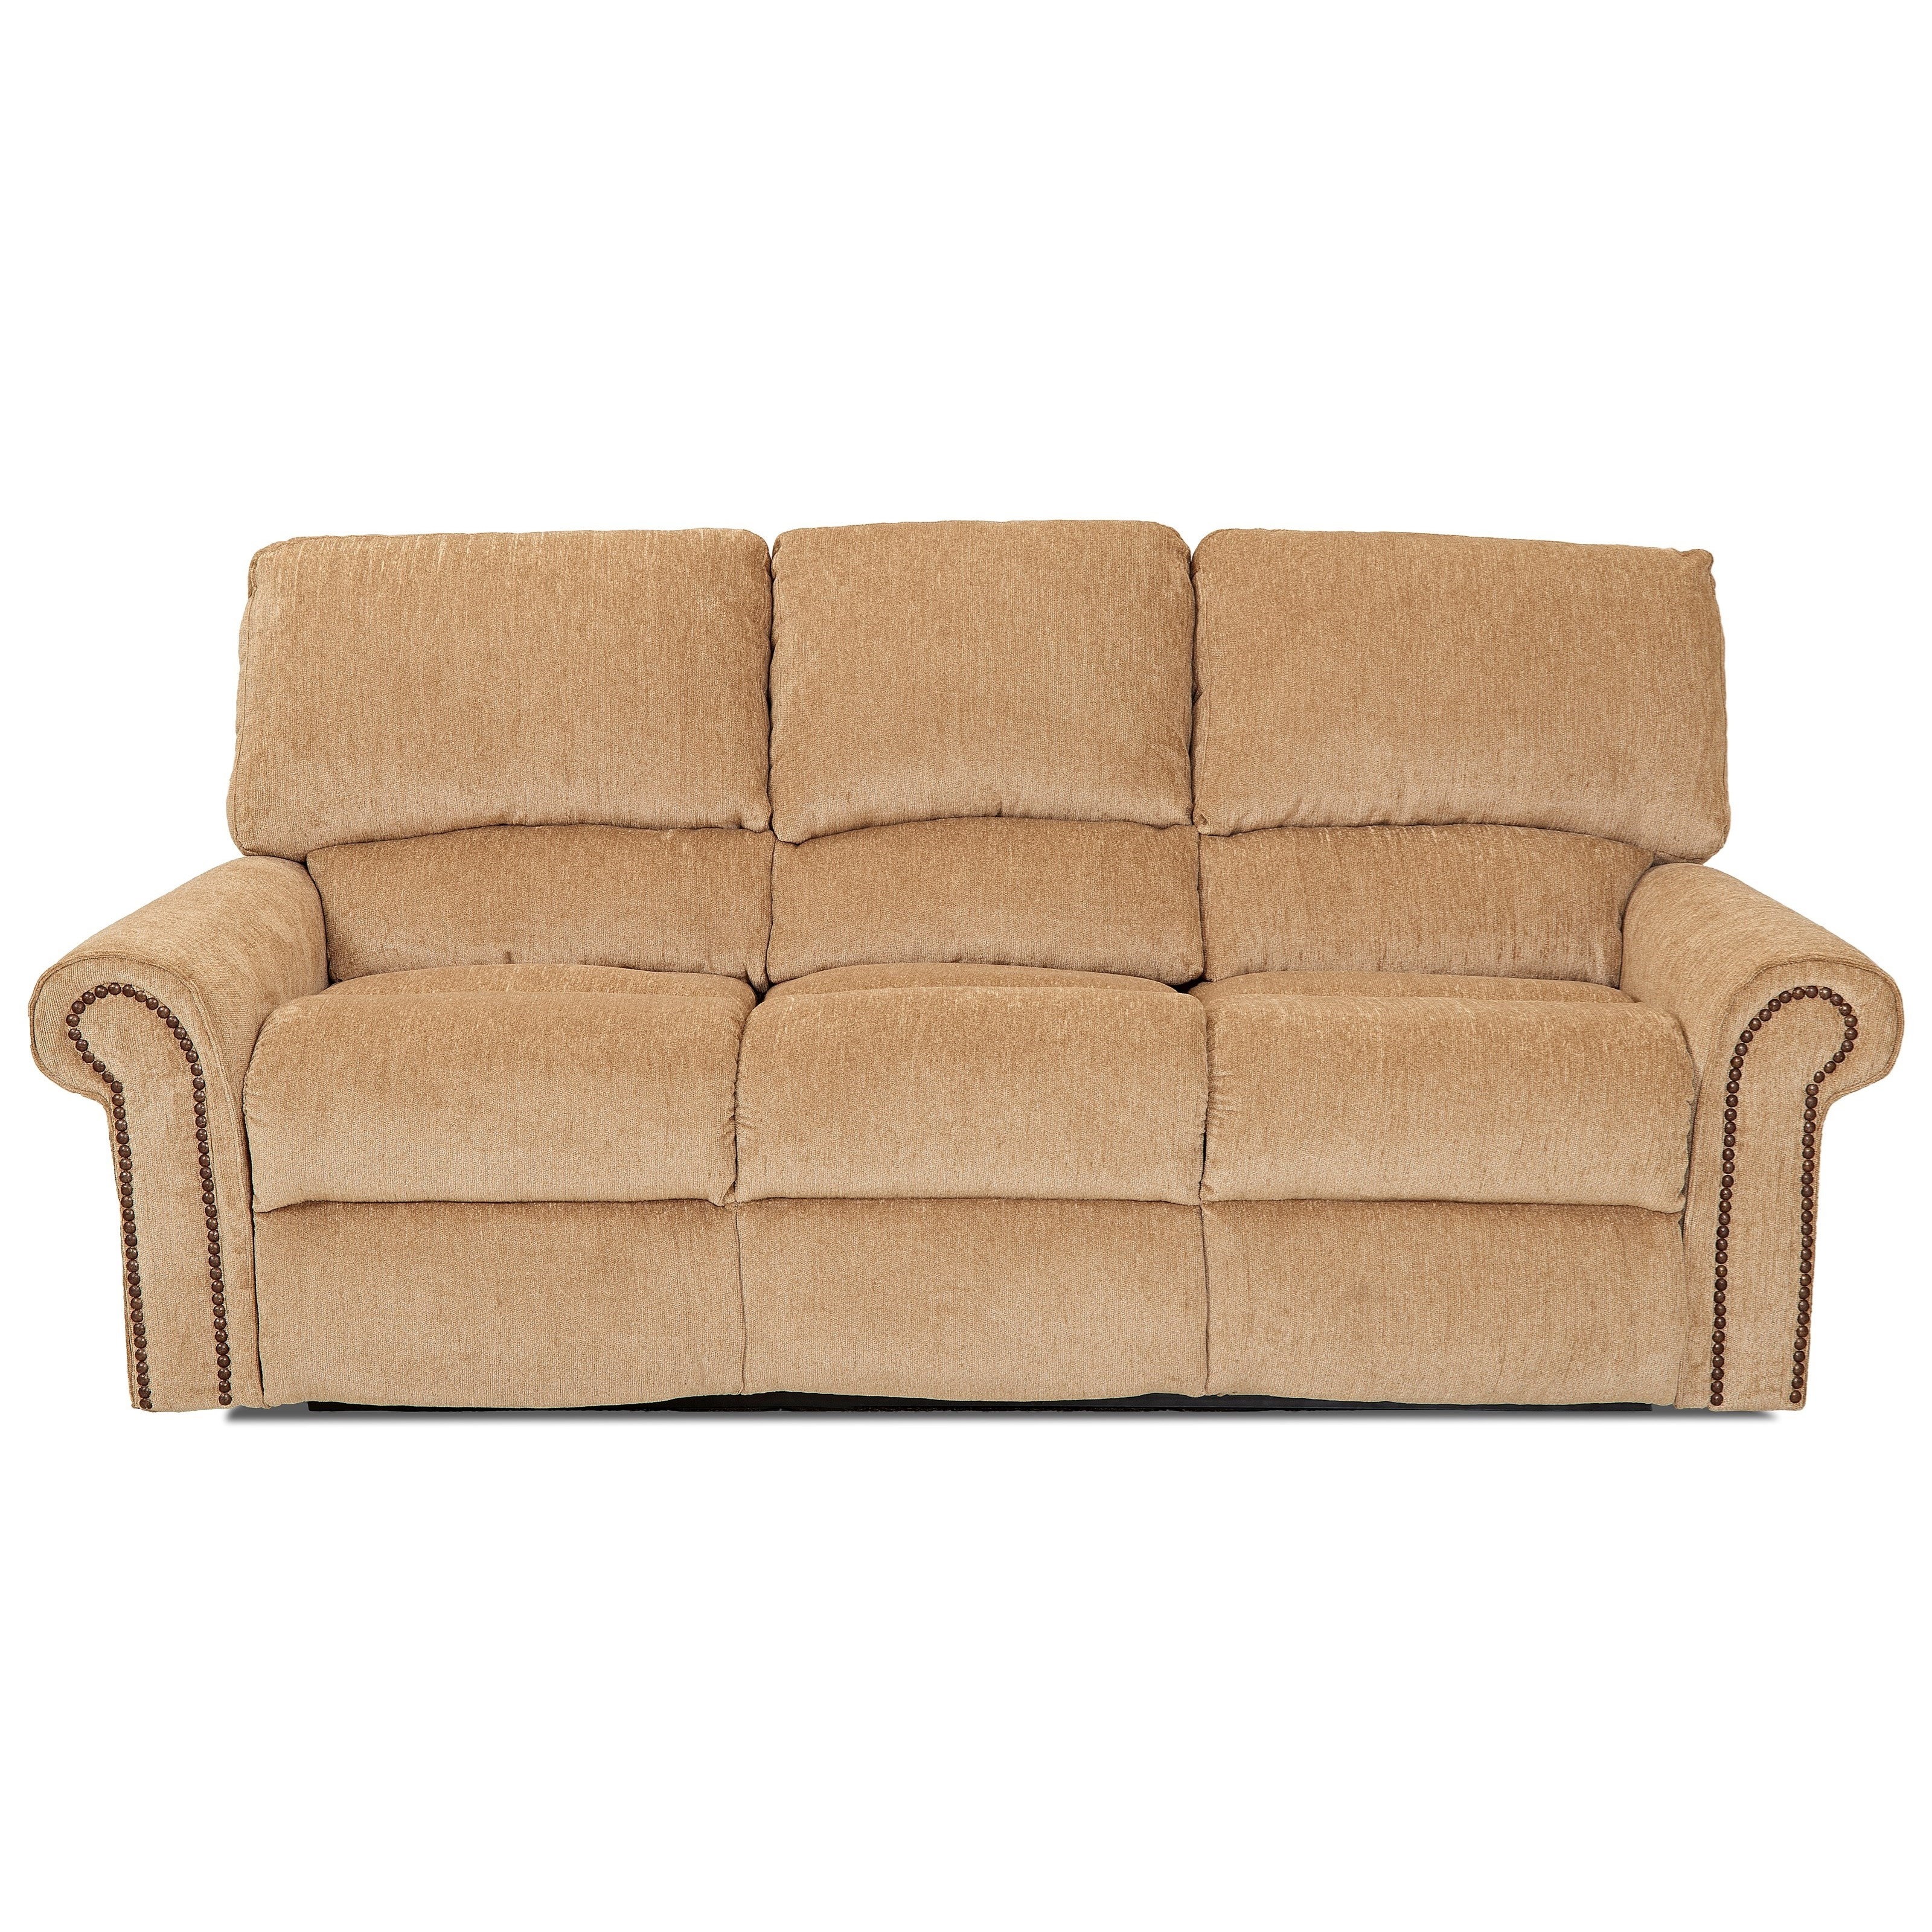 Big Sofa Usa Klaussner Savannah 62413 Rs Reclining Sofa With Rolled Arms